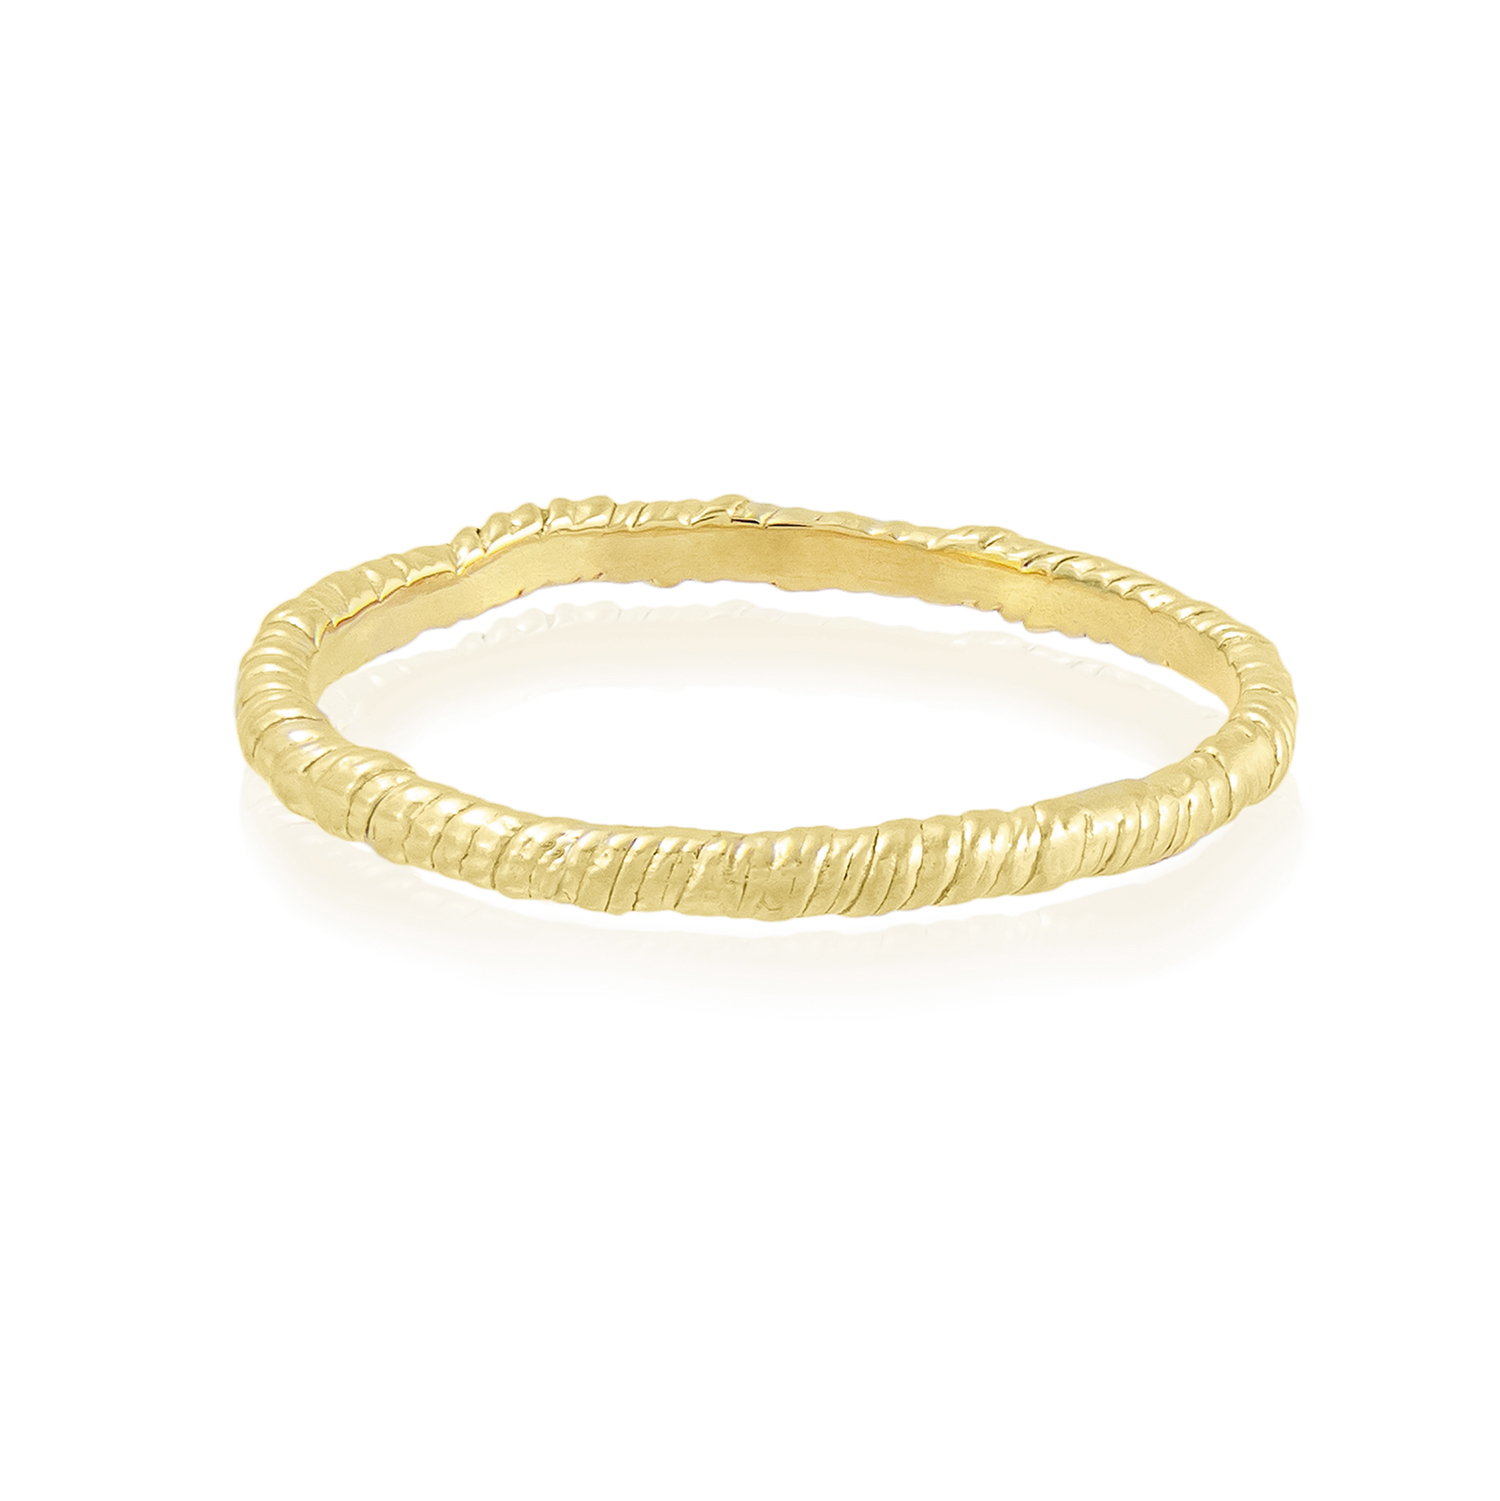 Natalie Perry Jewellery, Organic Twisted Ring 1.5mm